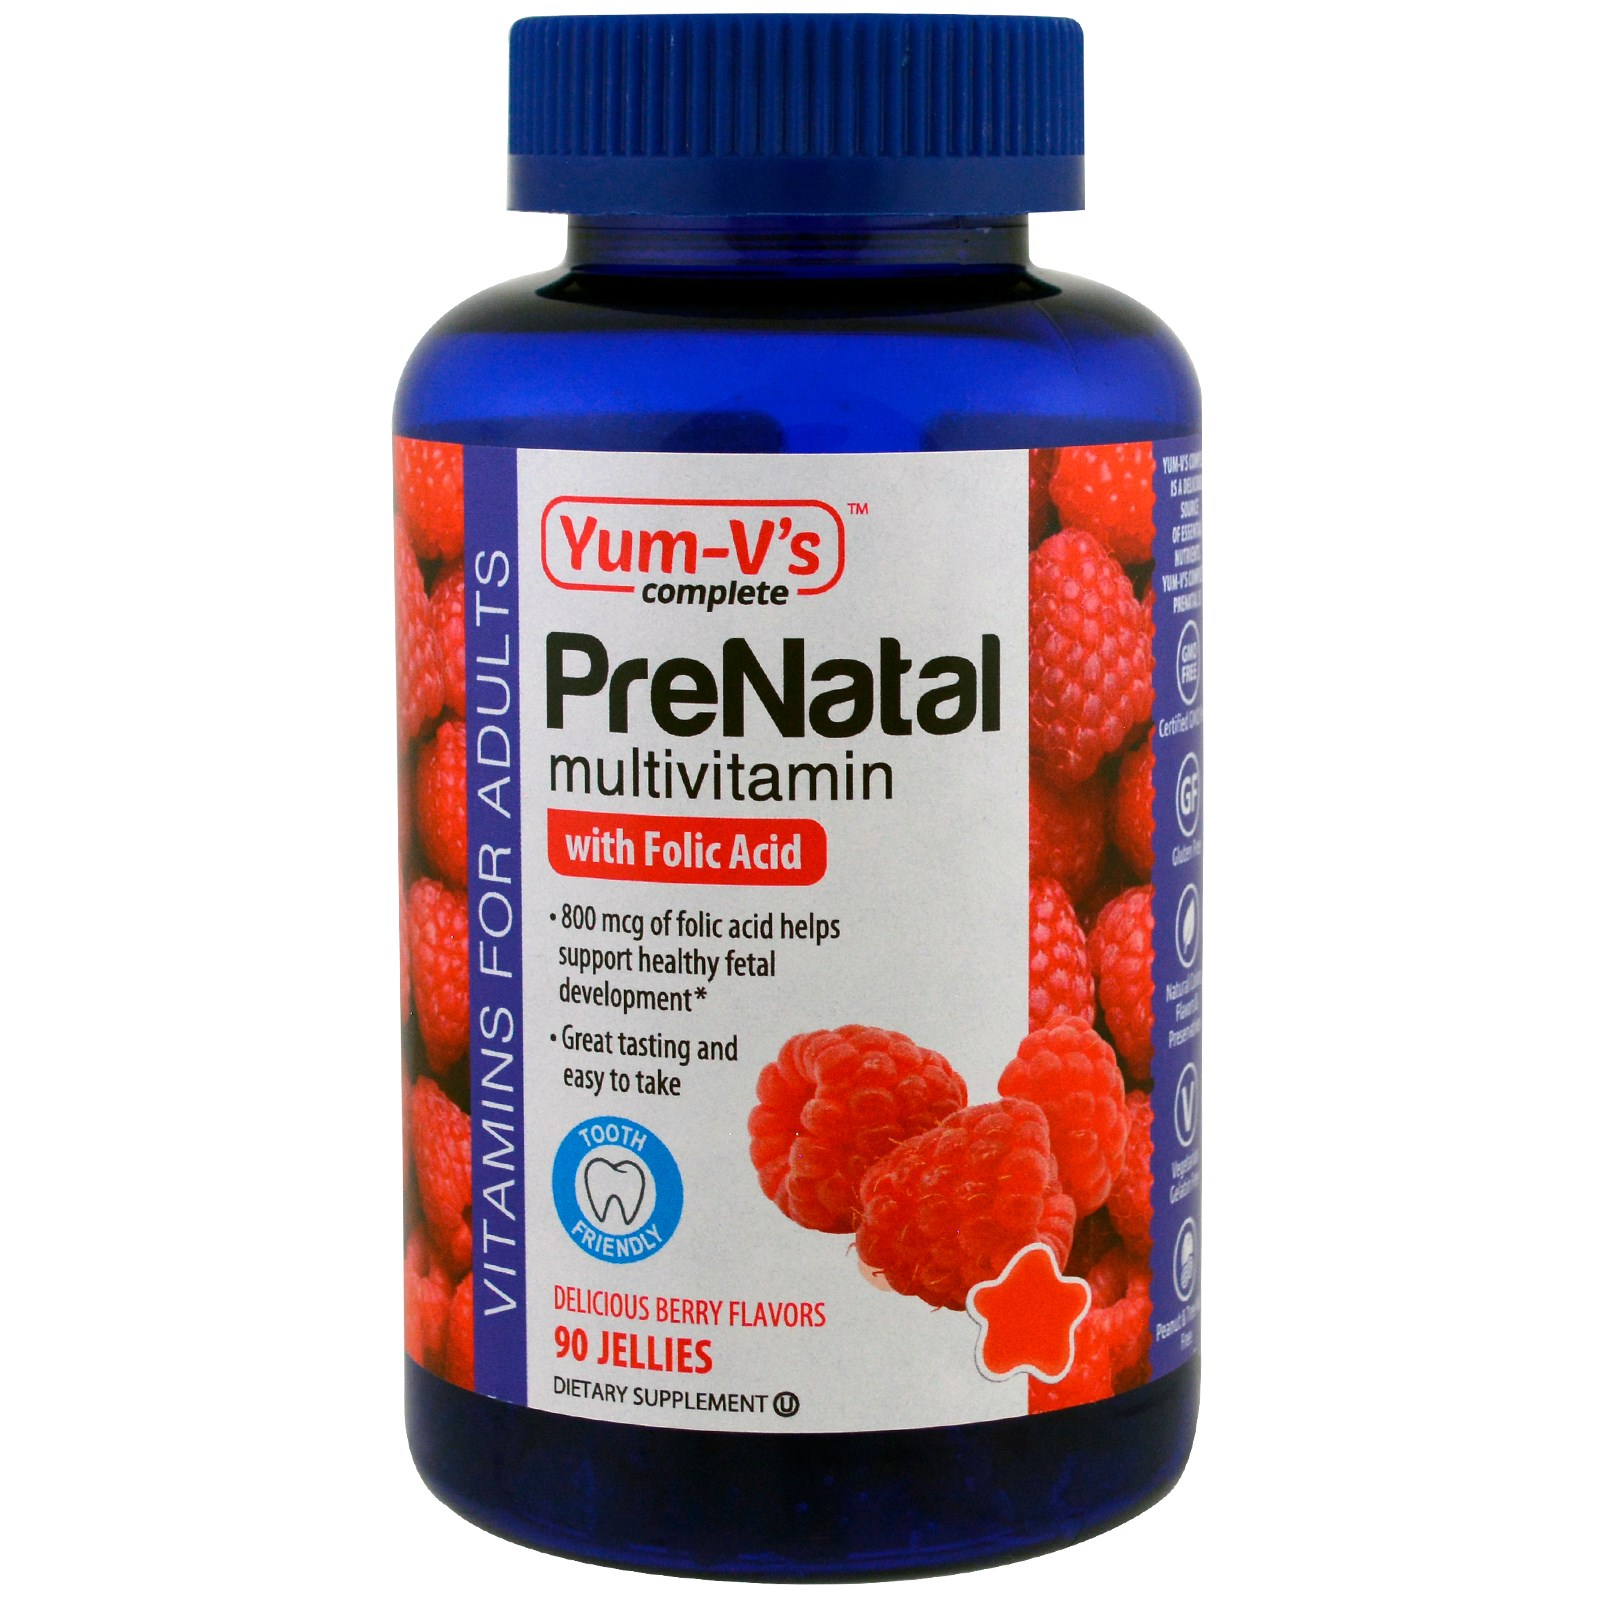 Yum-V's, PreNatal Multivitamin with Folic Acid, Berry Flavors, 90 Jellies(pack of 2)